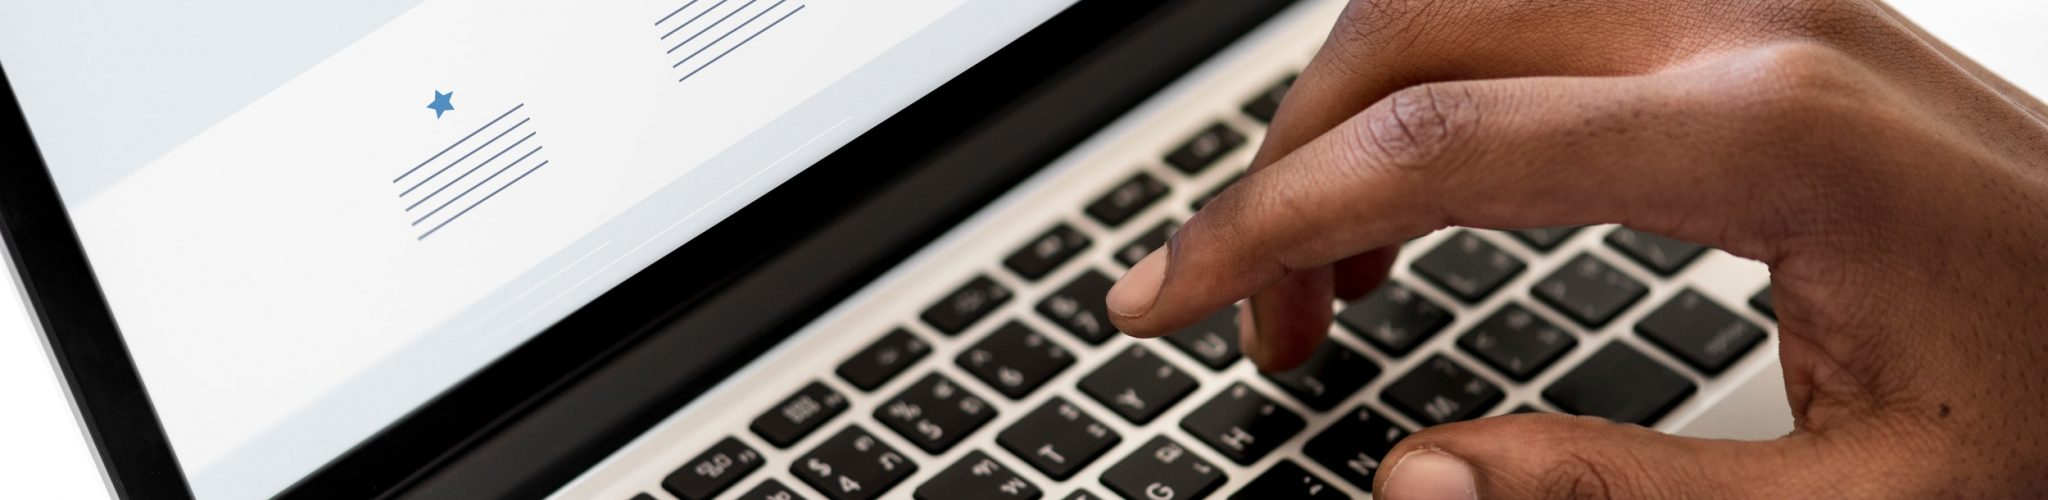 Open laptop with a hand typing on the keyboard